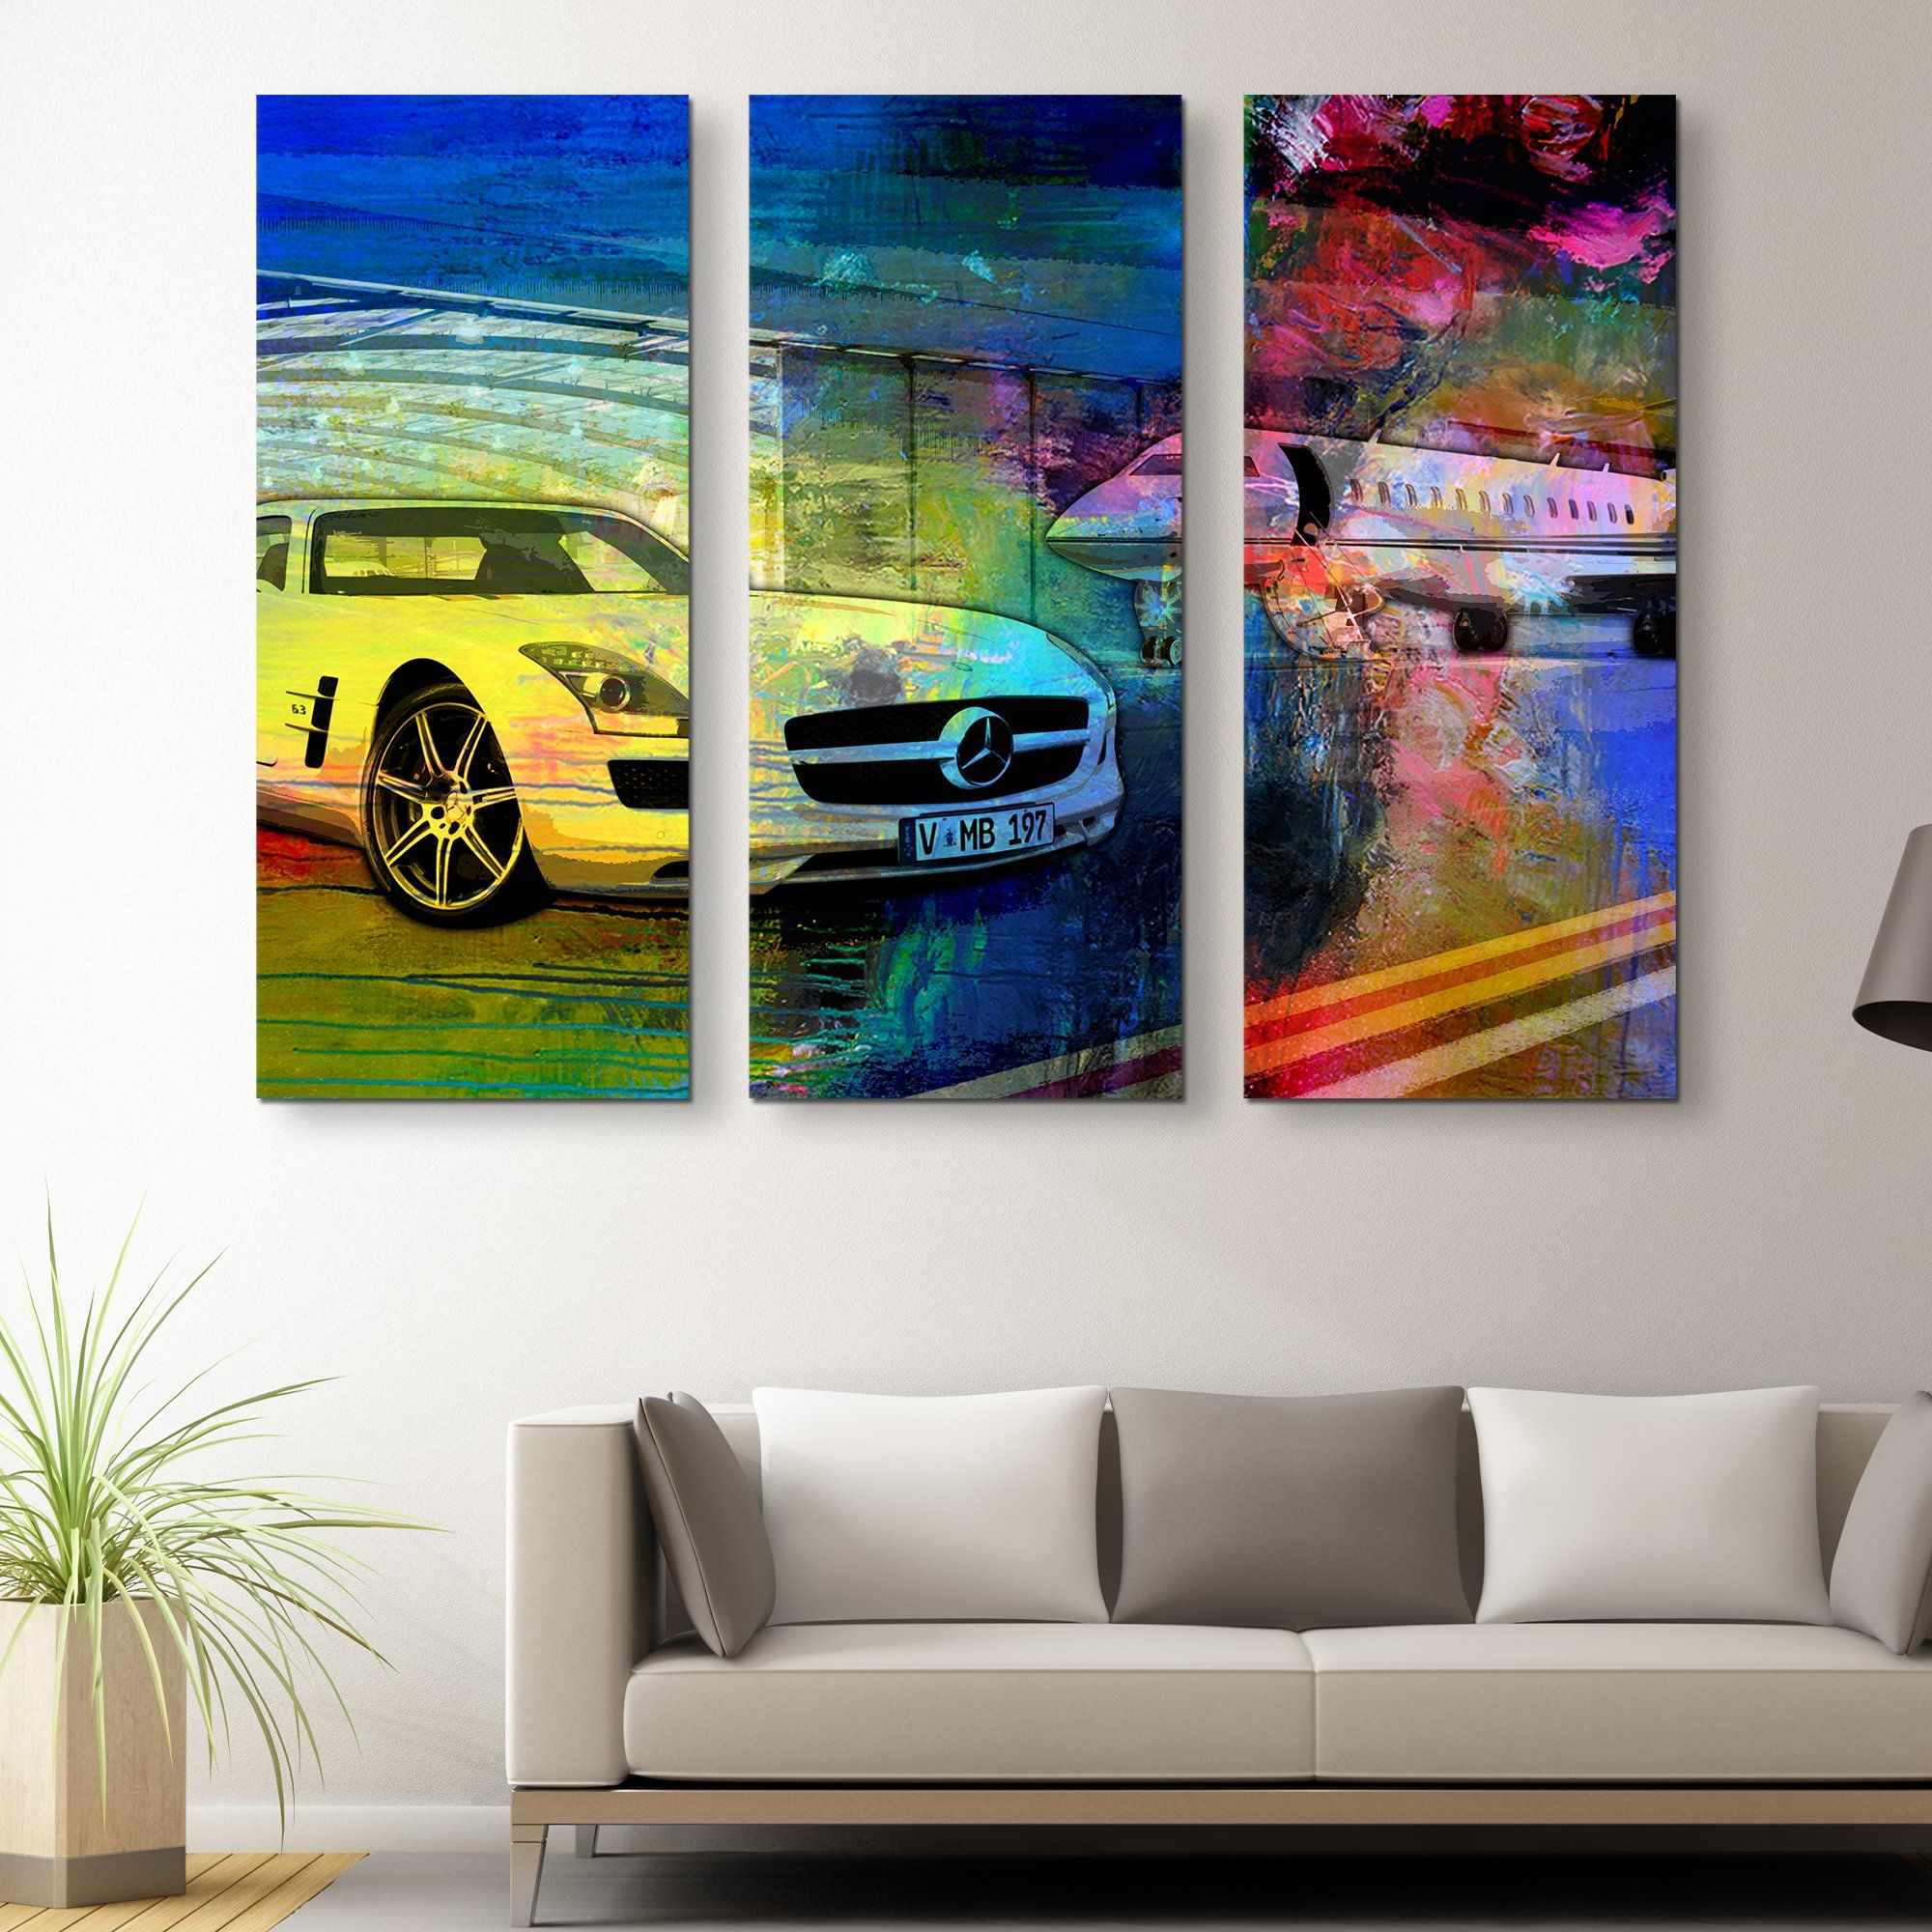 3 piece The Hangar wall art